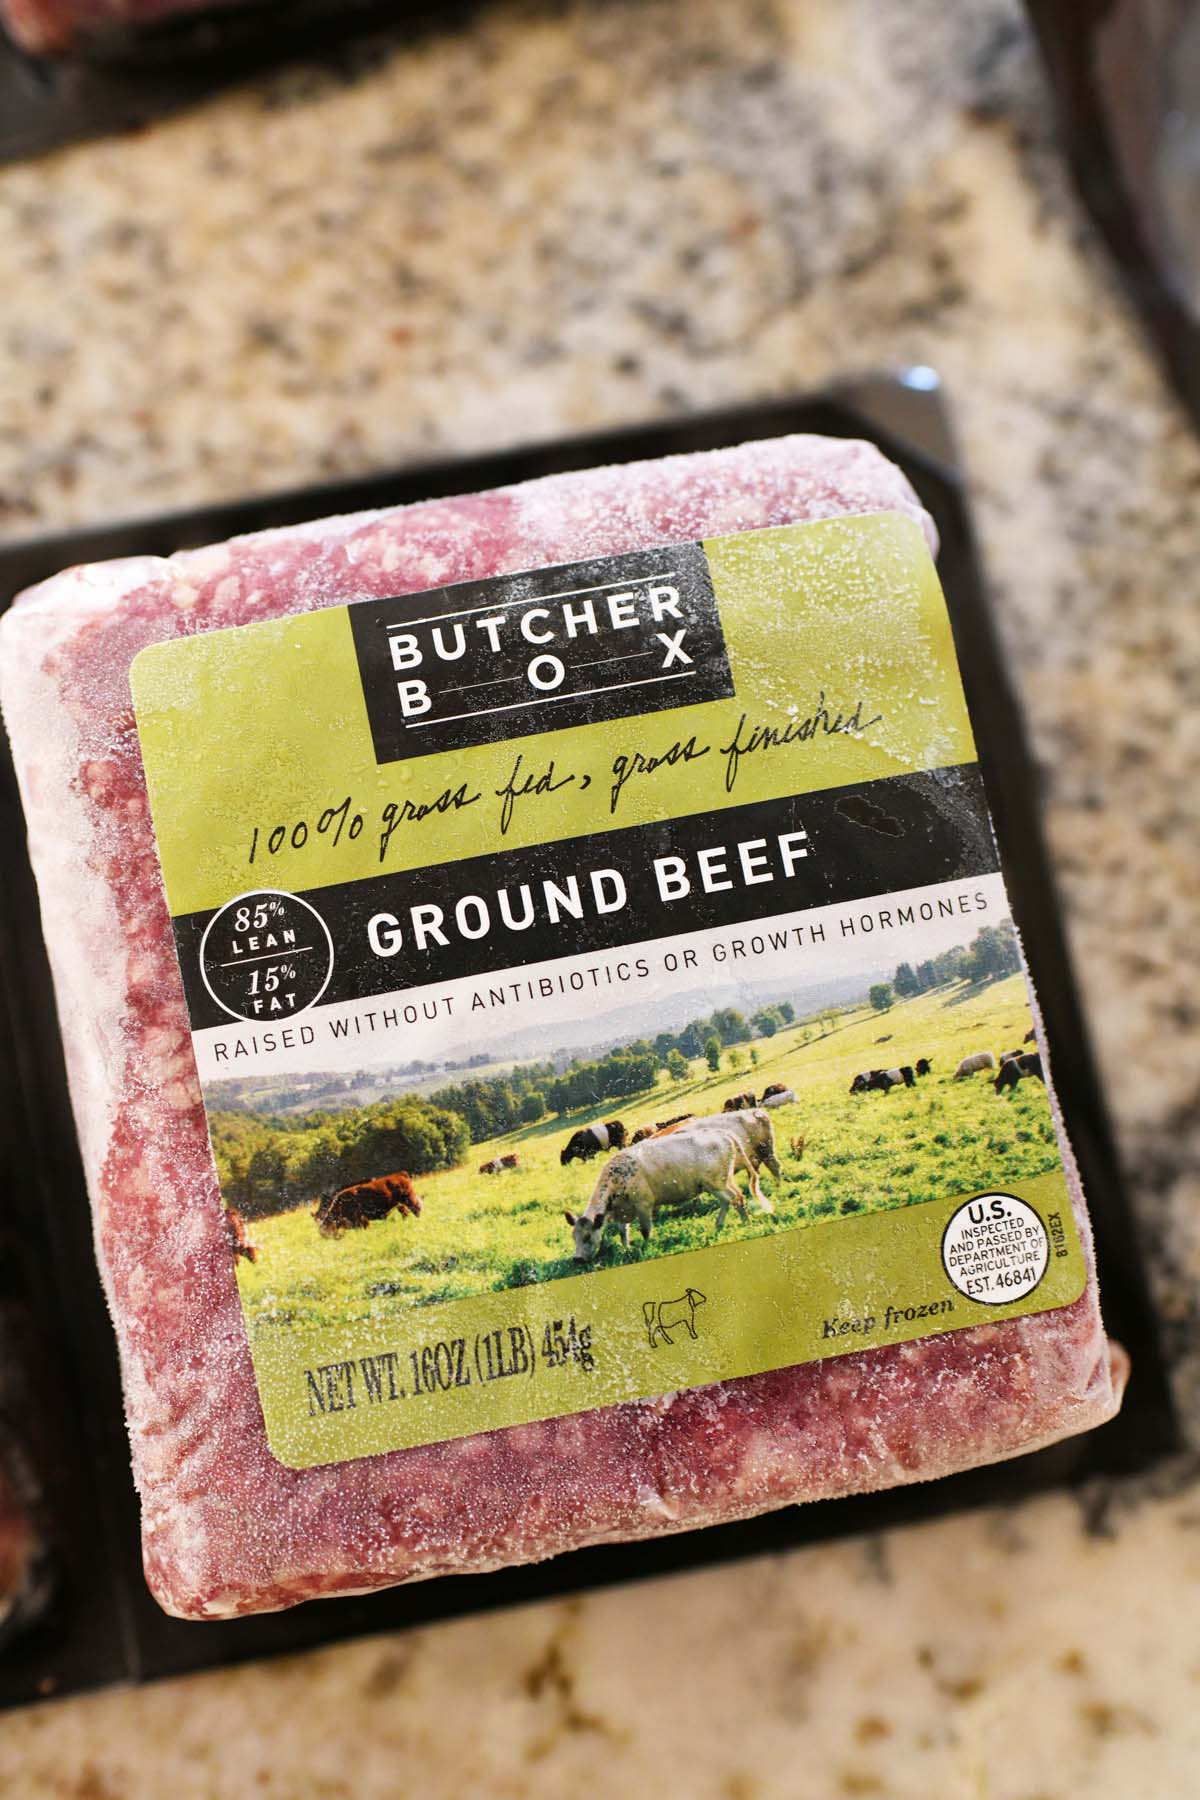 Butcher Box Ground Beef package up close on a counter.